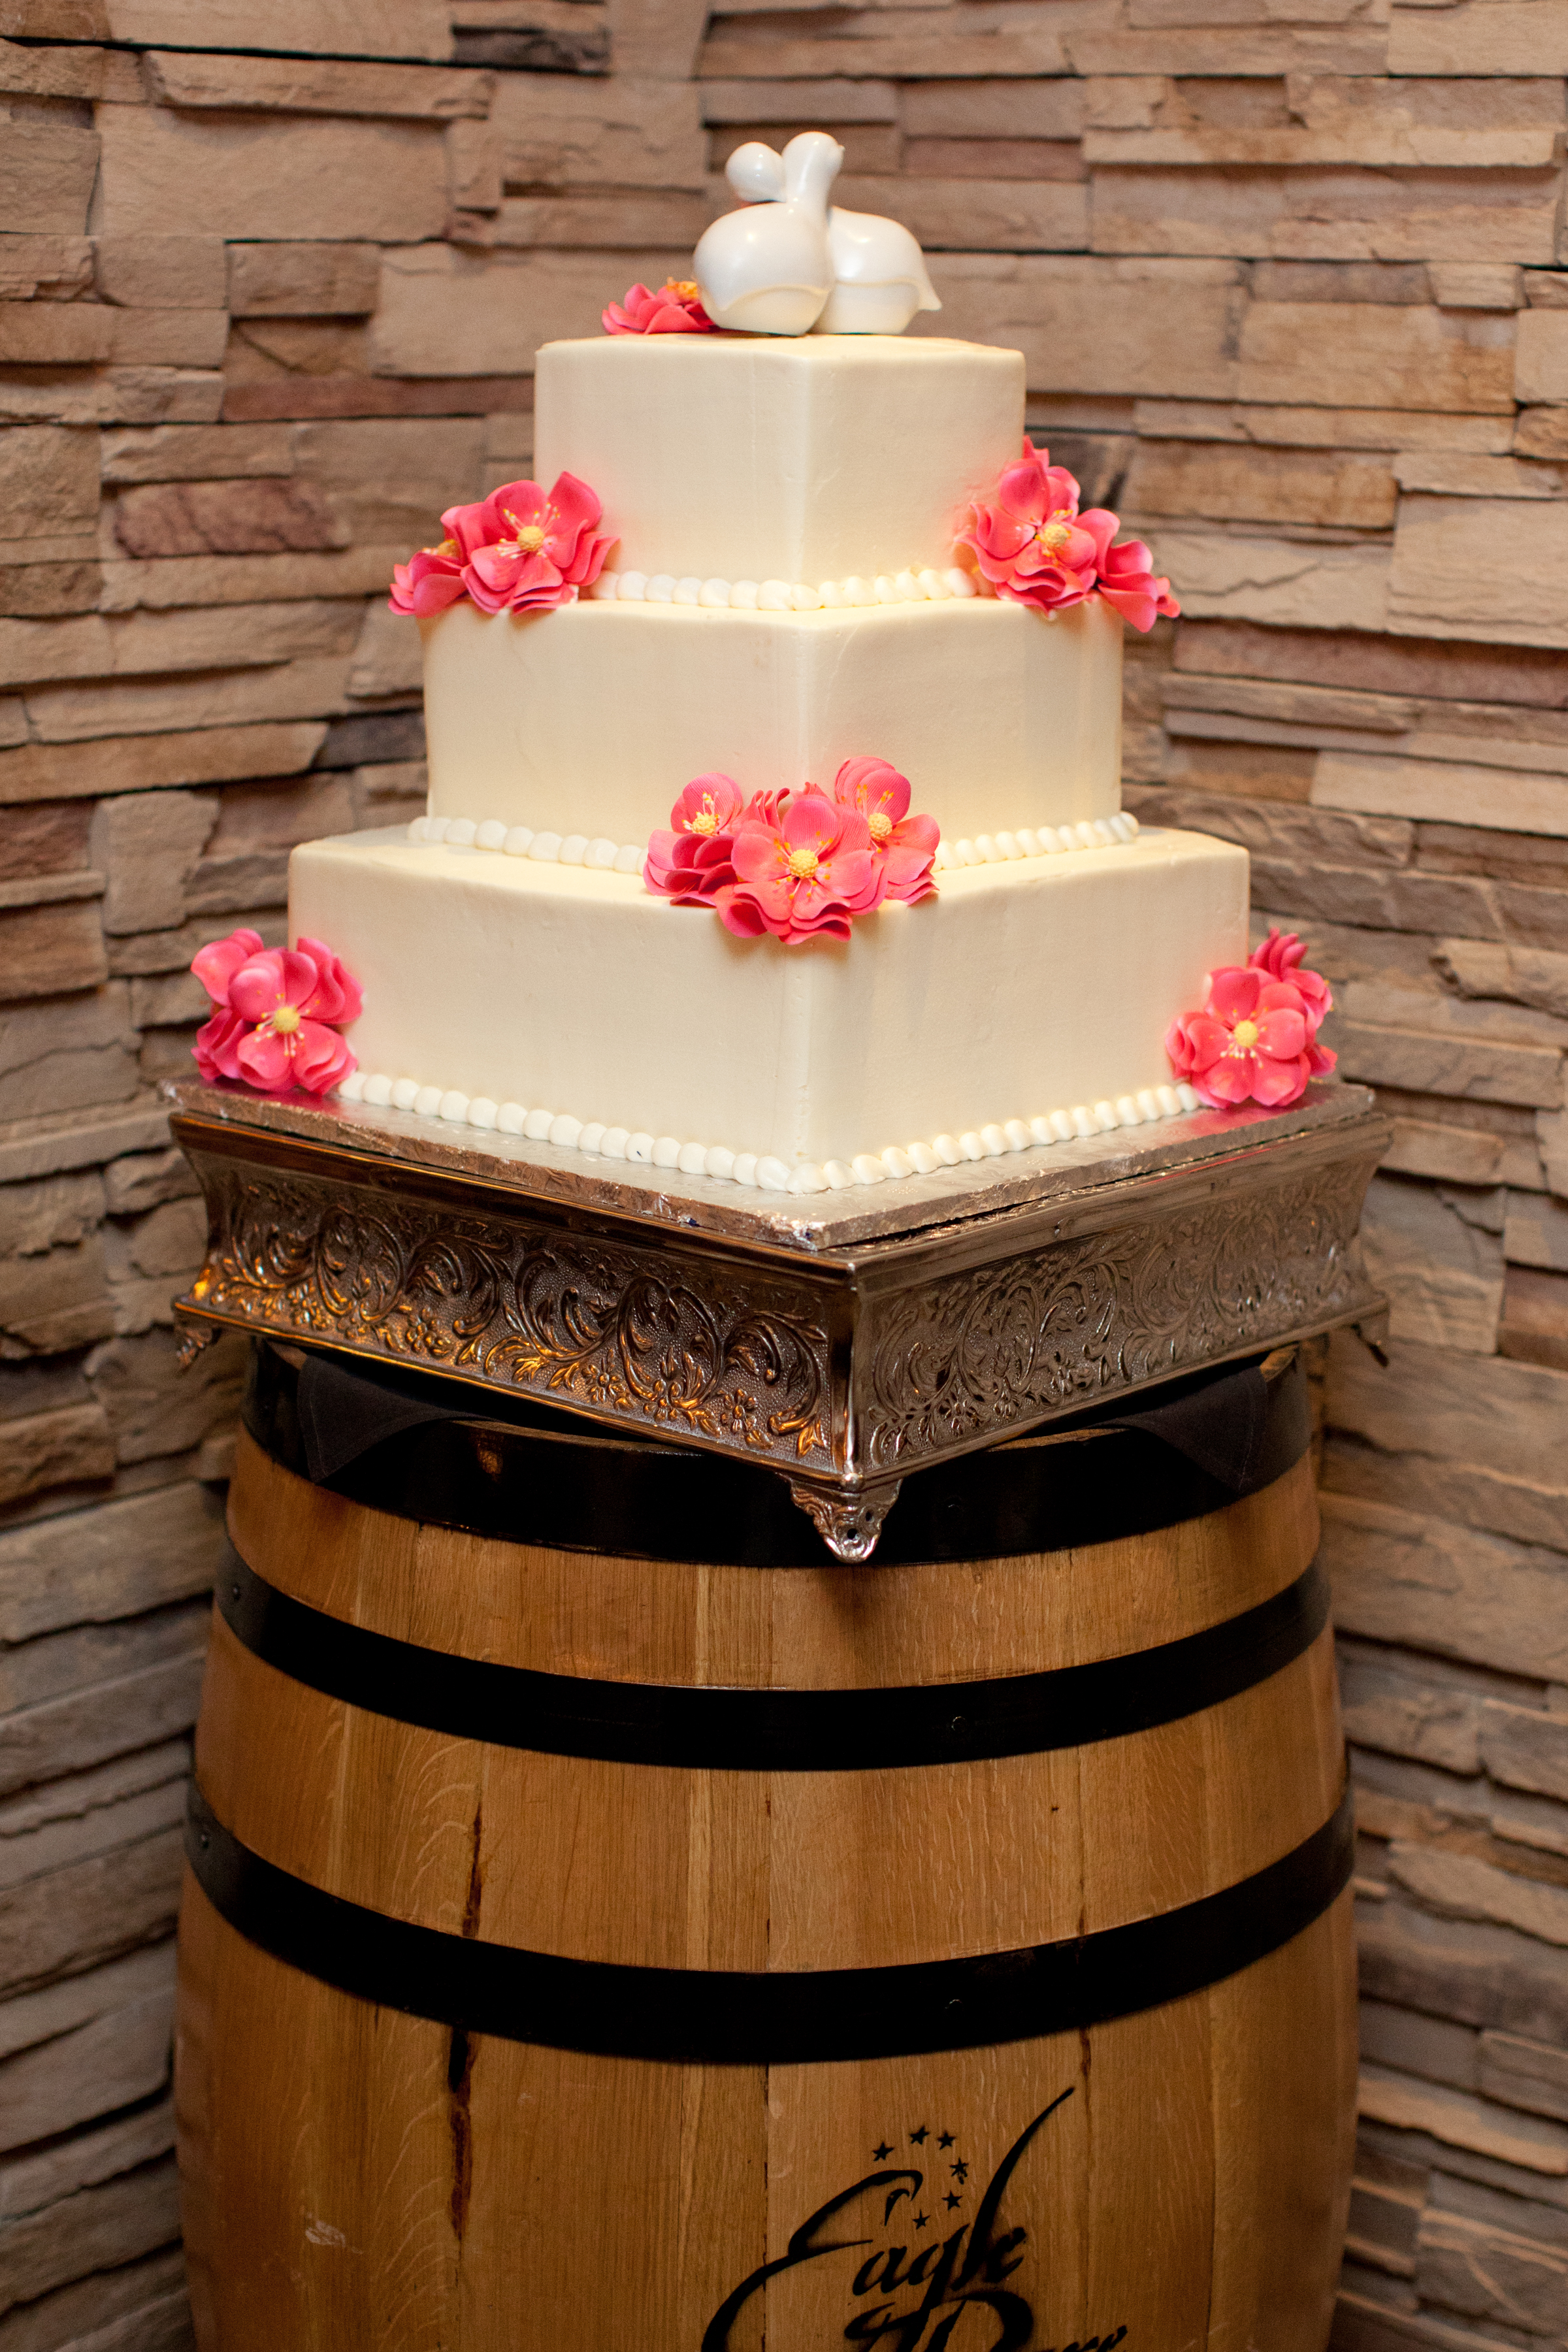 This Cake Comes From Ivys Fine Cakes In Canton My Very Good Friend Gets All Her There And Ivy Did Their Wedding Two Years Ago